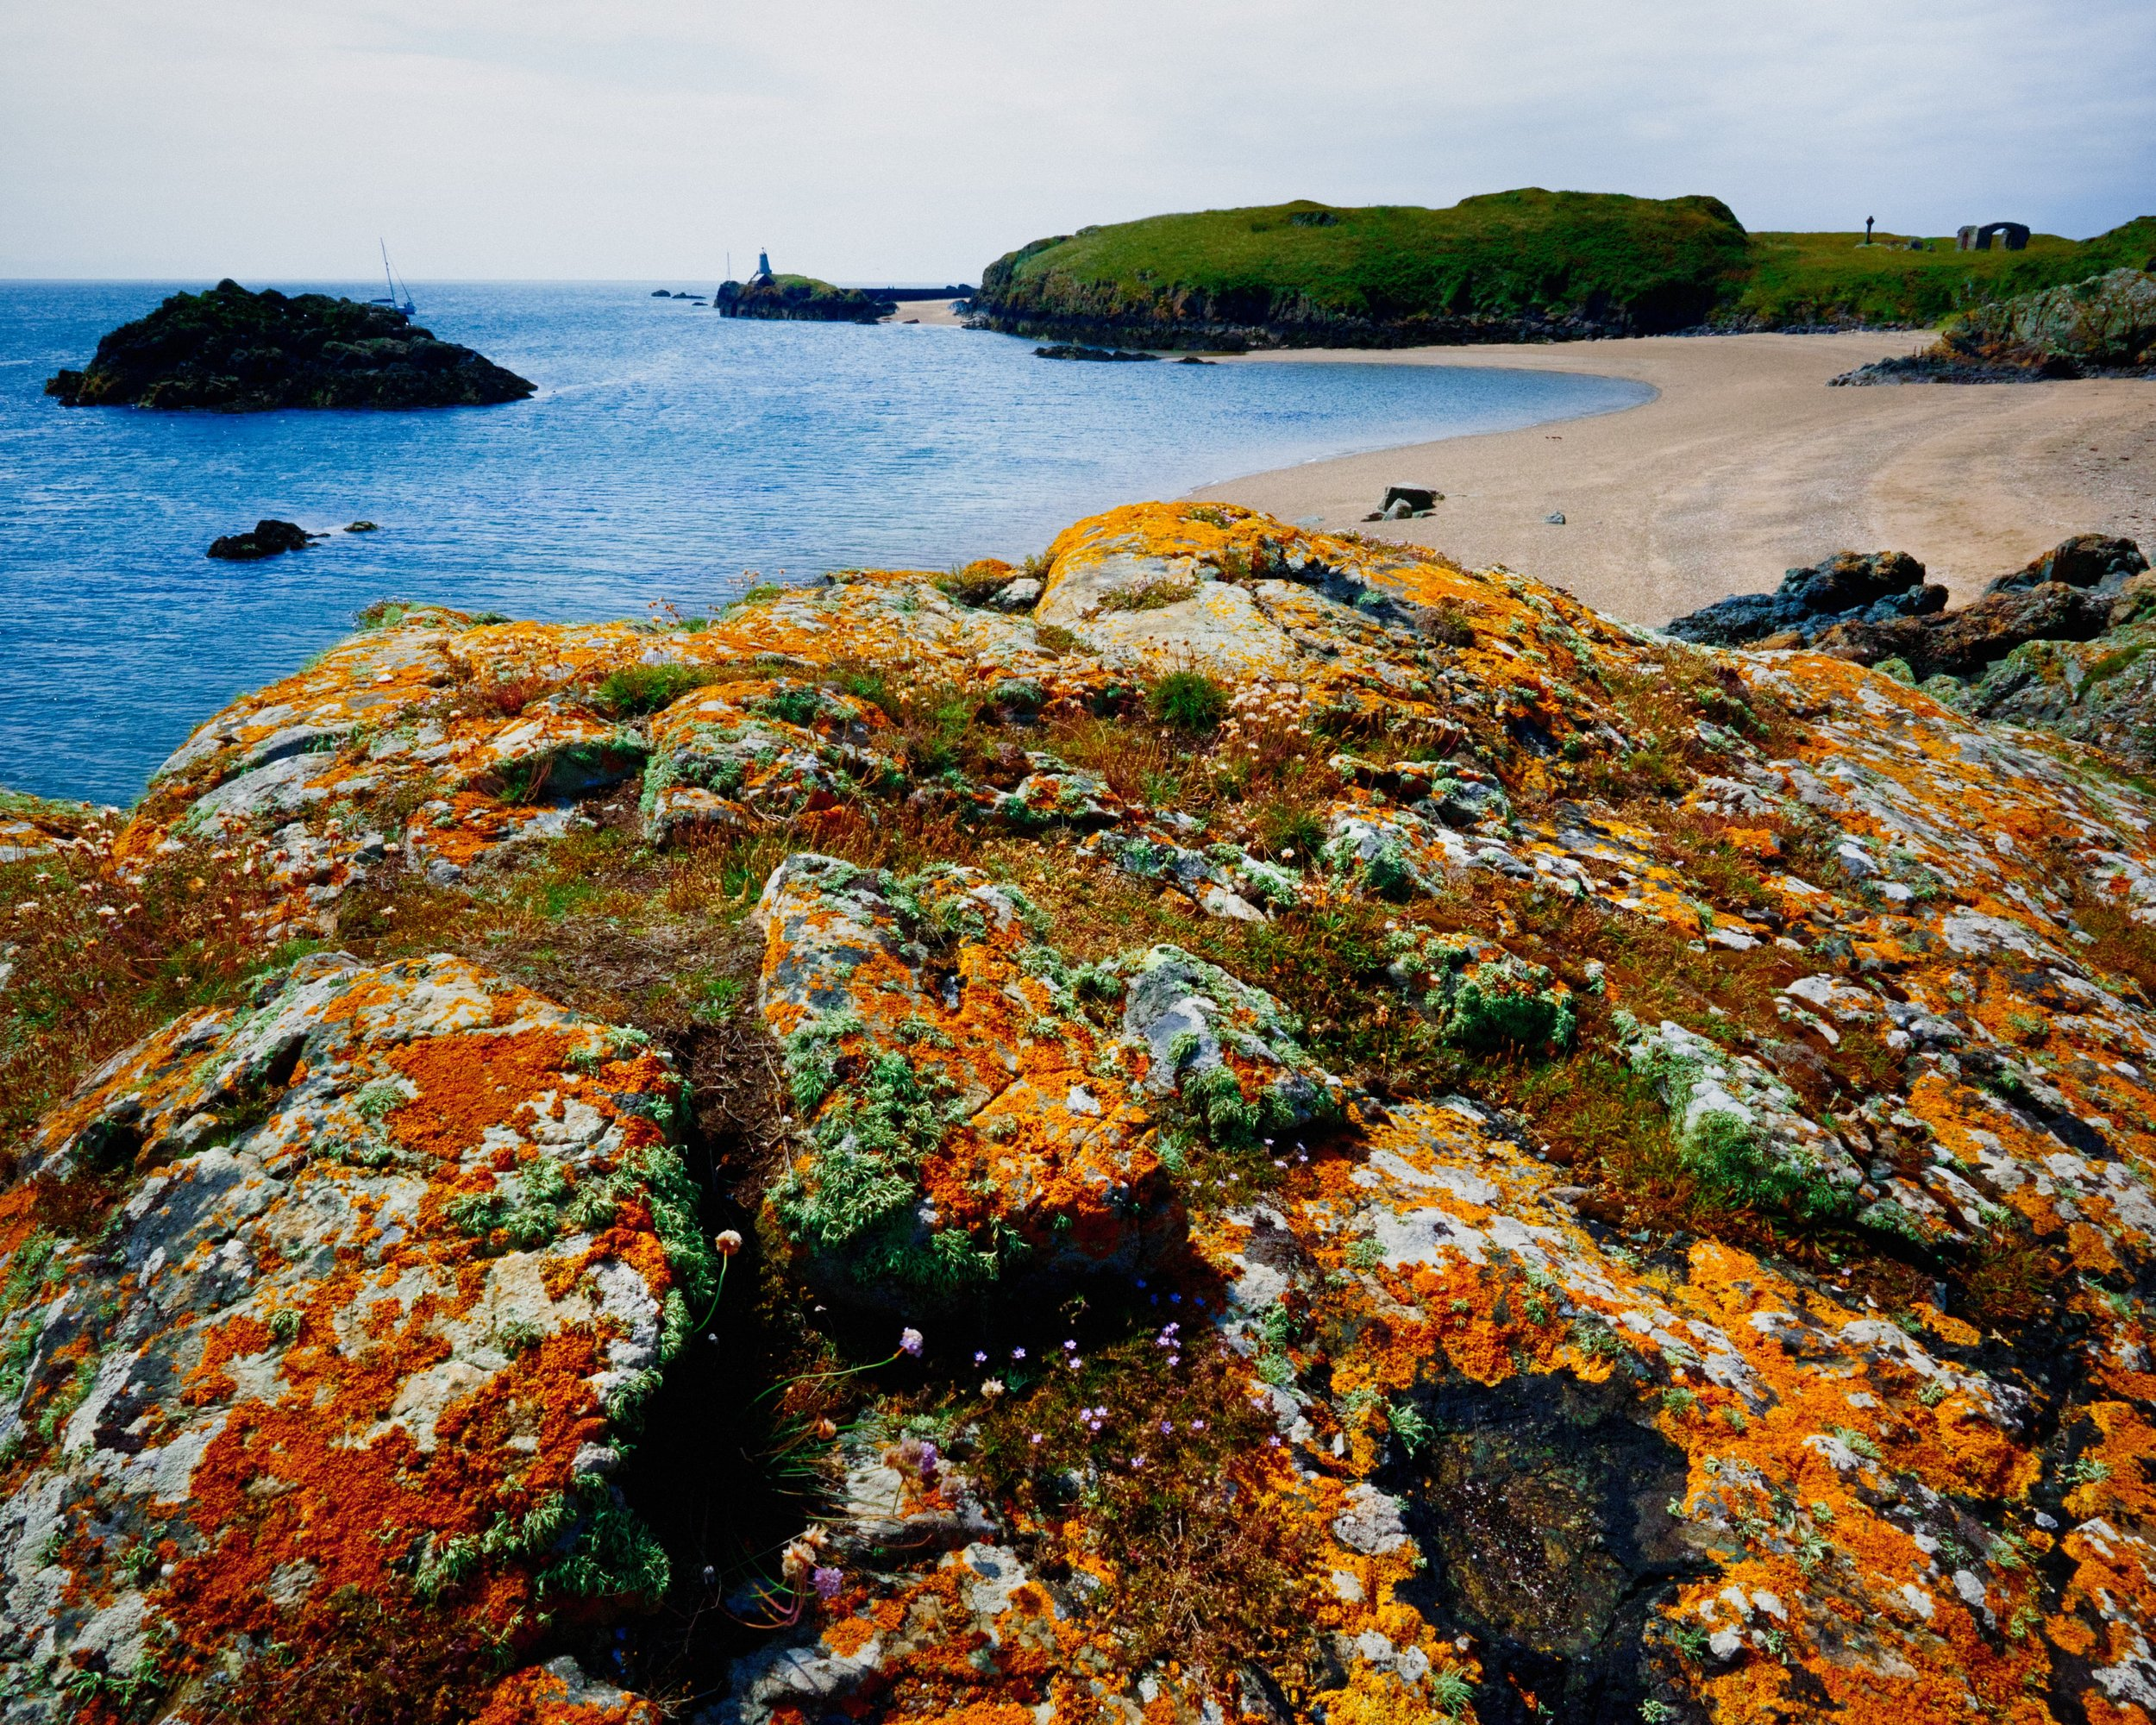 Ynys Llanddwyn, the spit of craggy land off Newborough beach in Anglesey, is a botanist's dream. Read the rest of this blog post here  https://www.iancylkowski.com/blog/2019/7/27/the-island-of-colourful-rocks